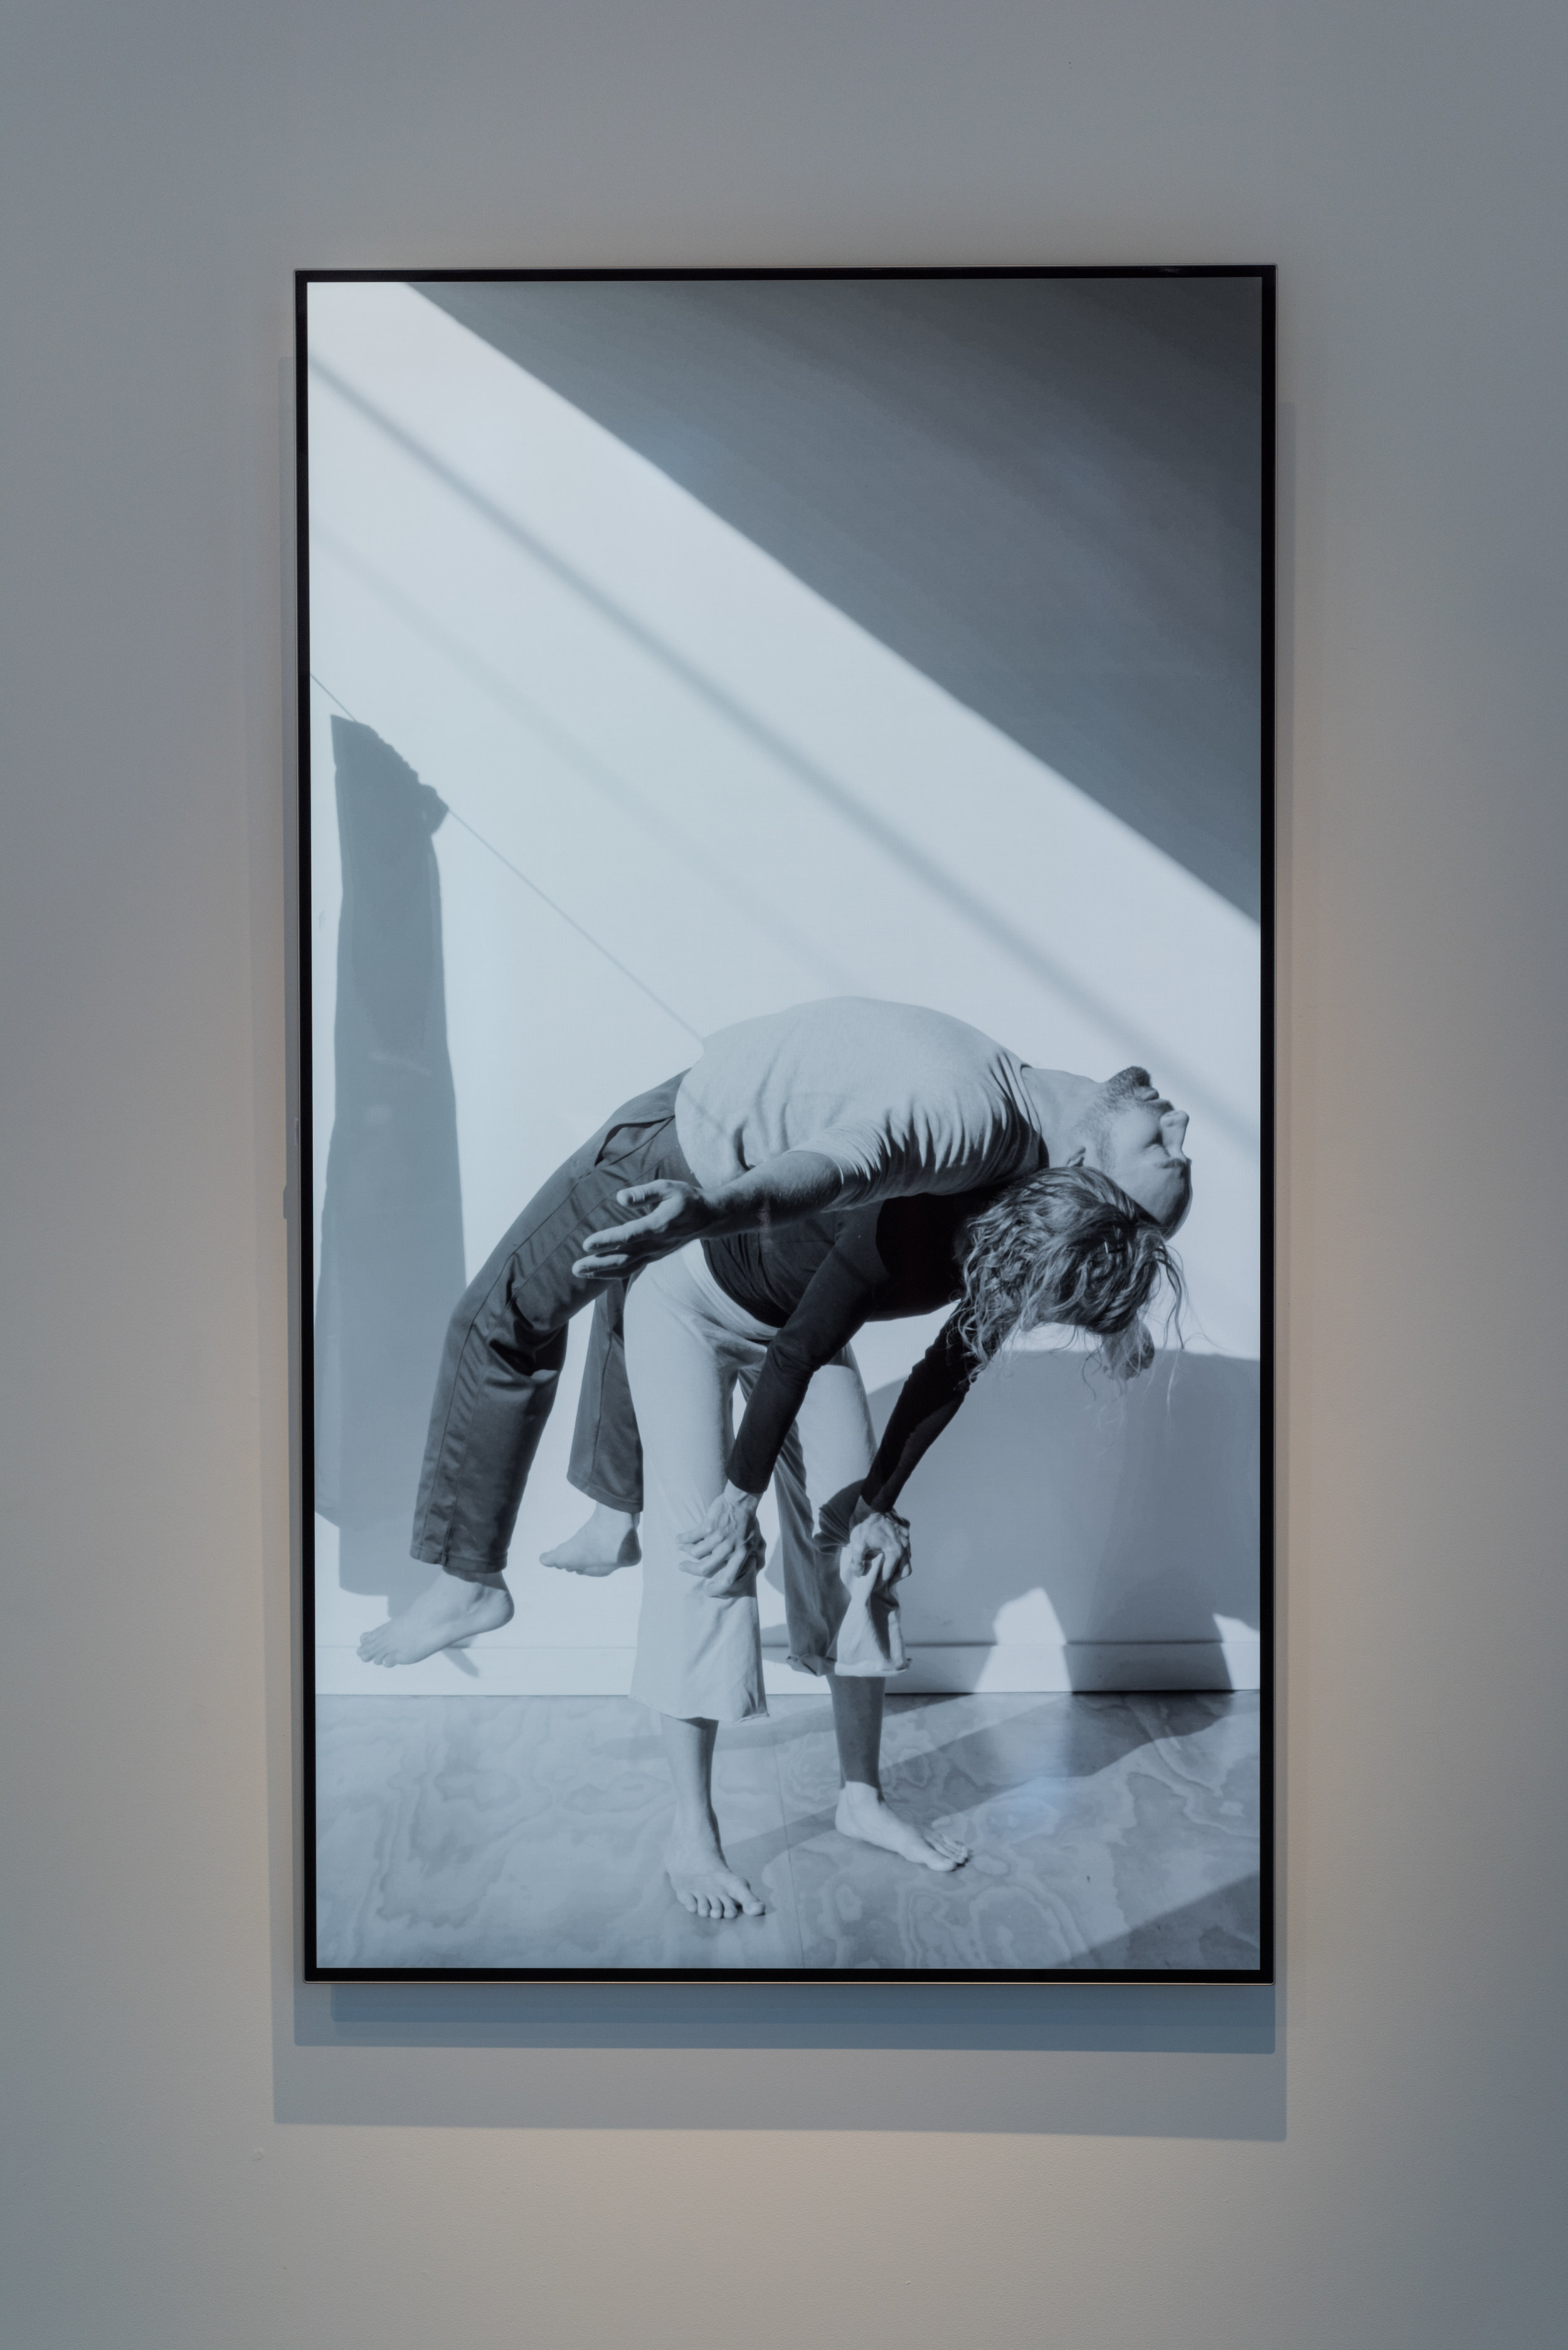 Contact,  2017  video, 65 in. screen  edition 1/5, 2 APs